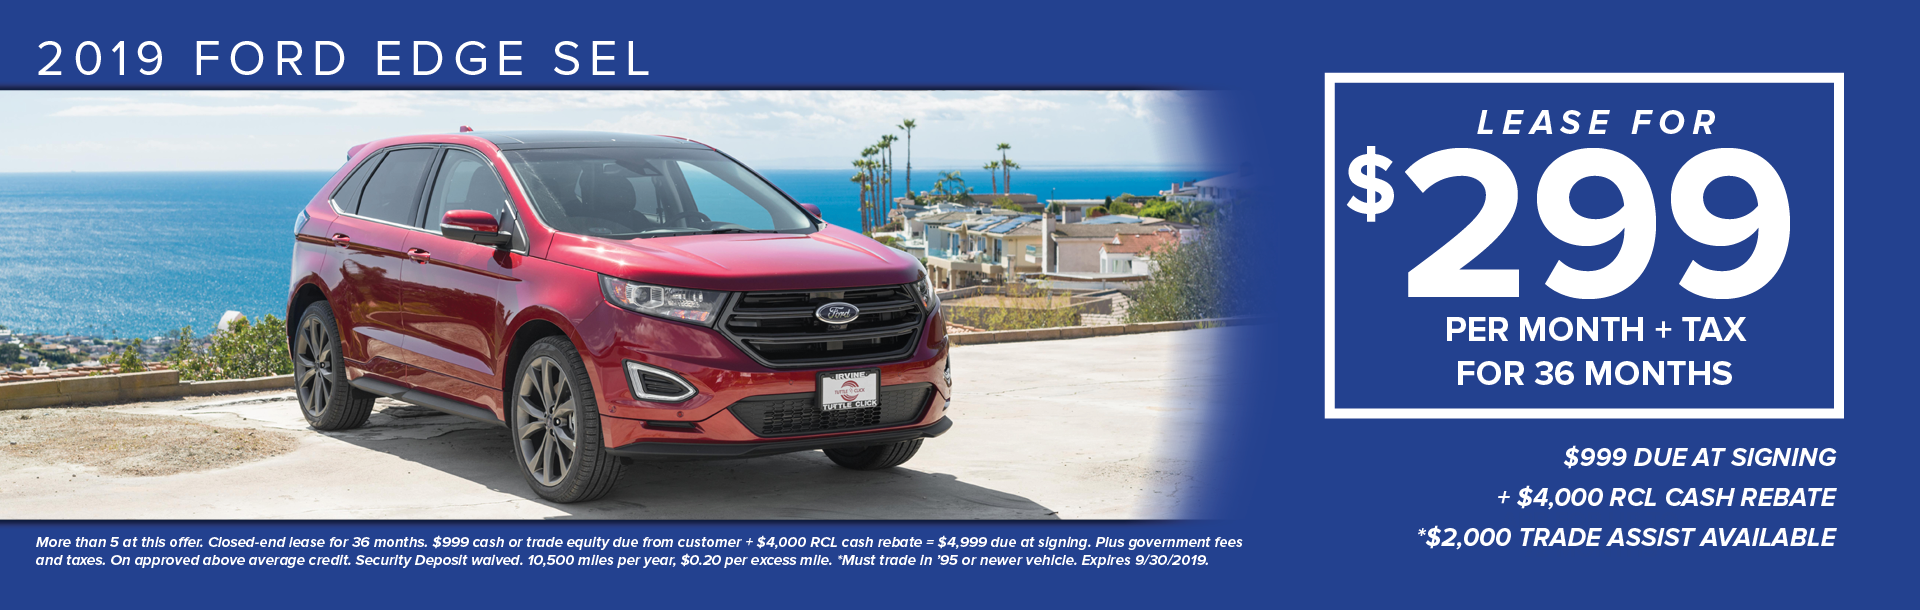 2019 Ford Edge Lease1